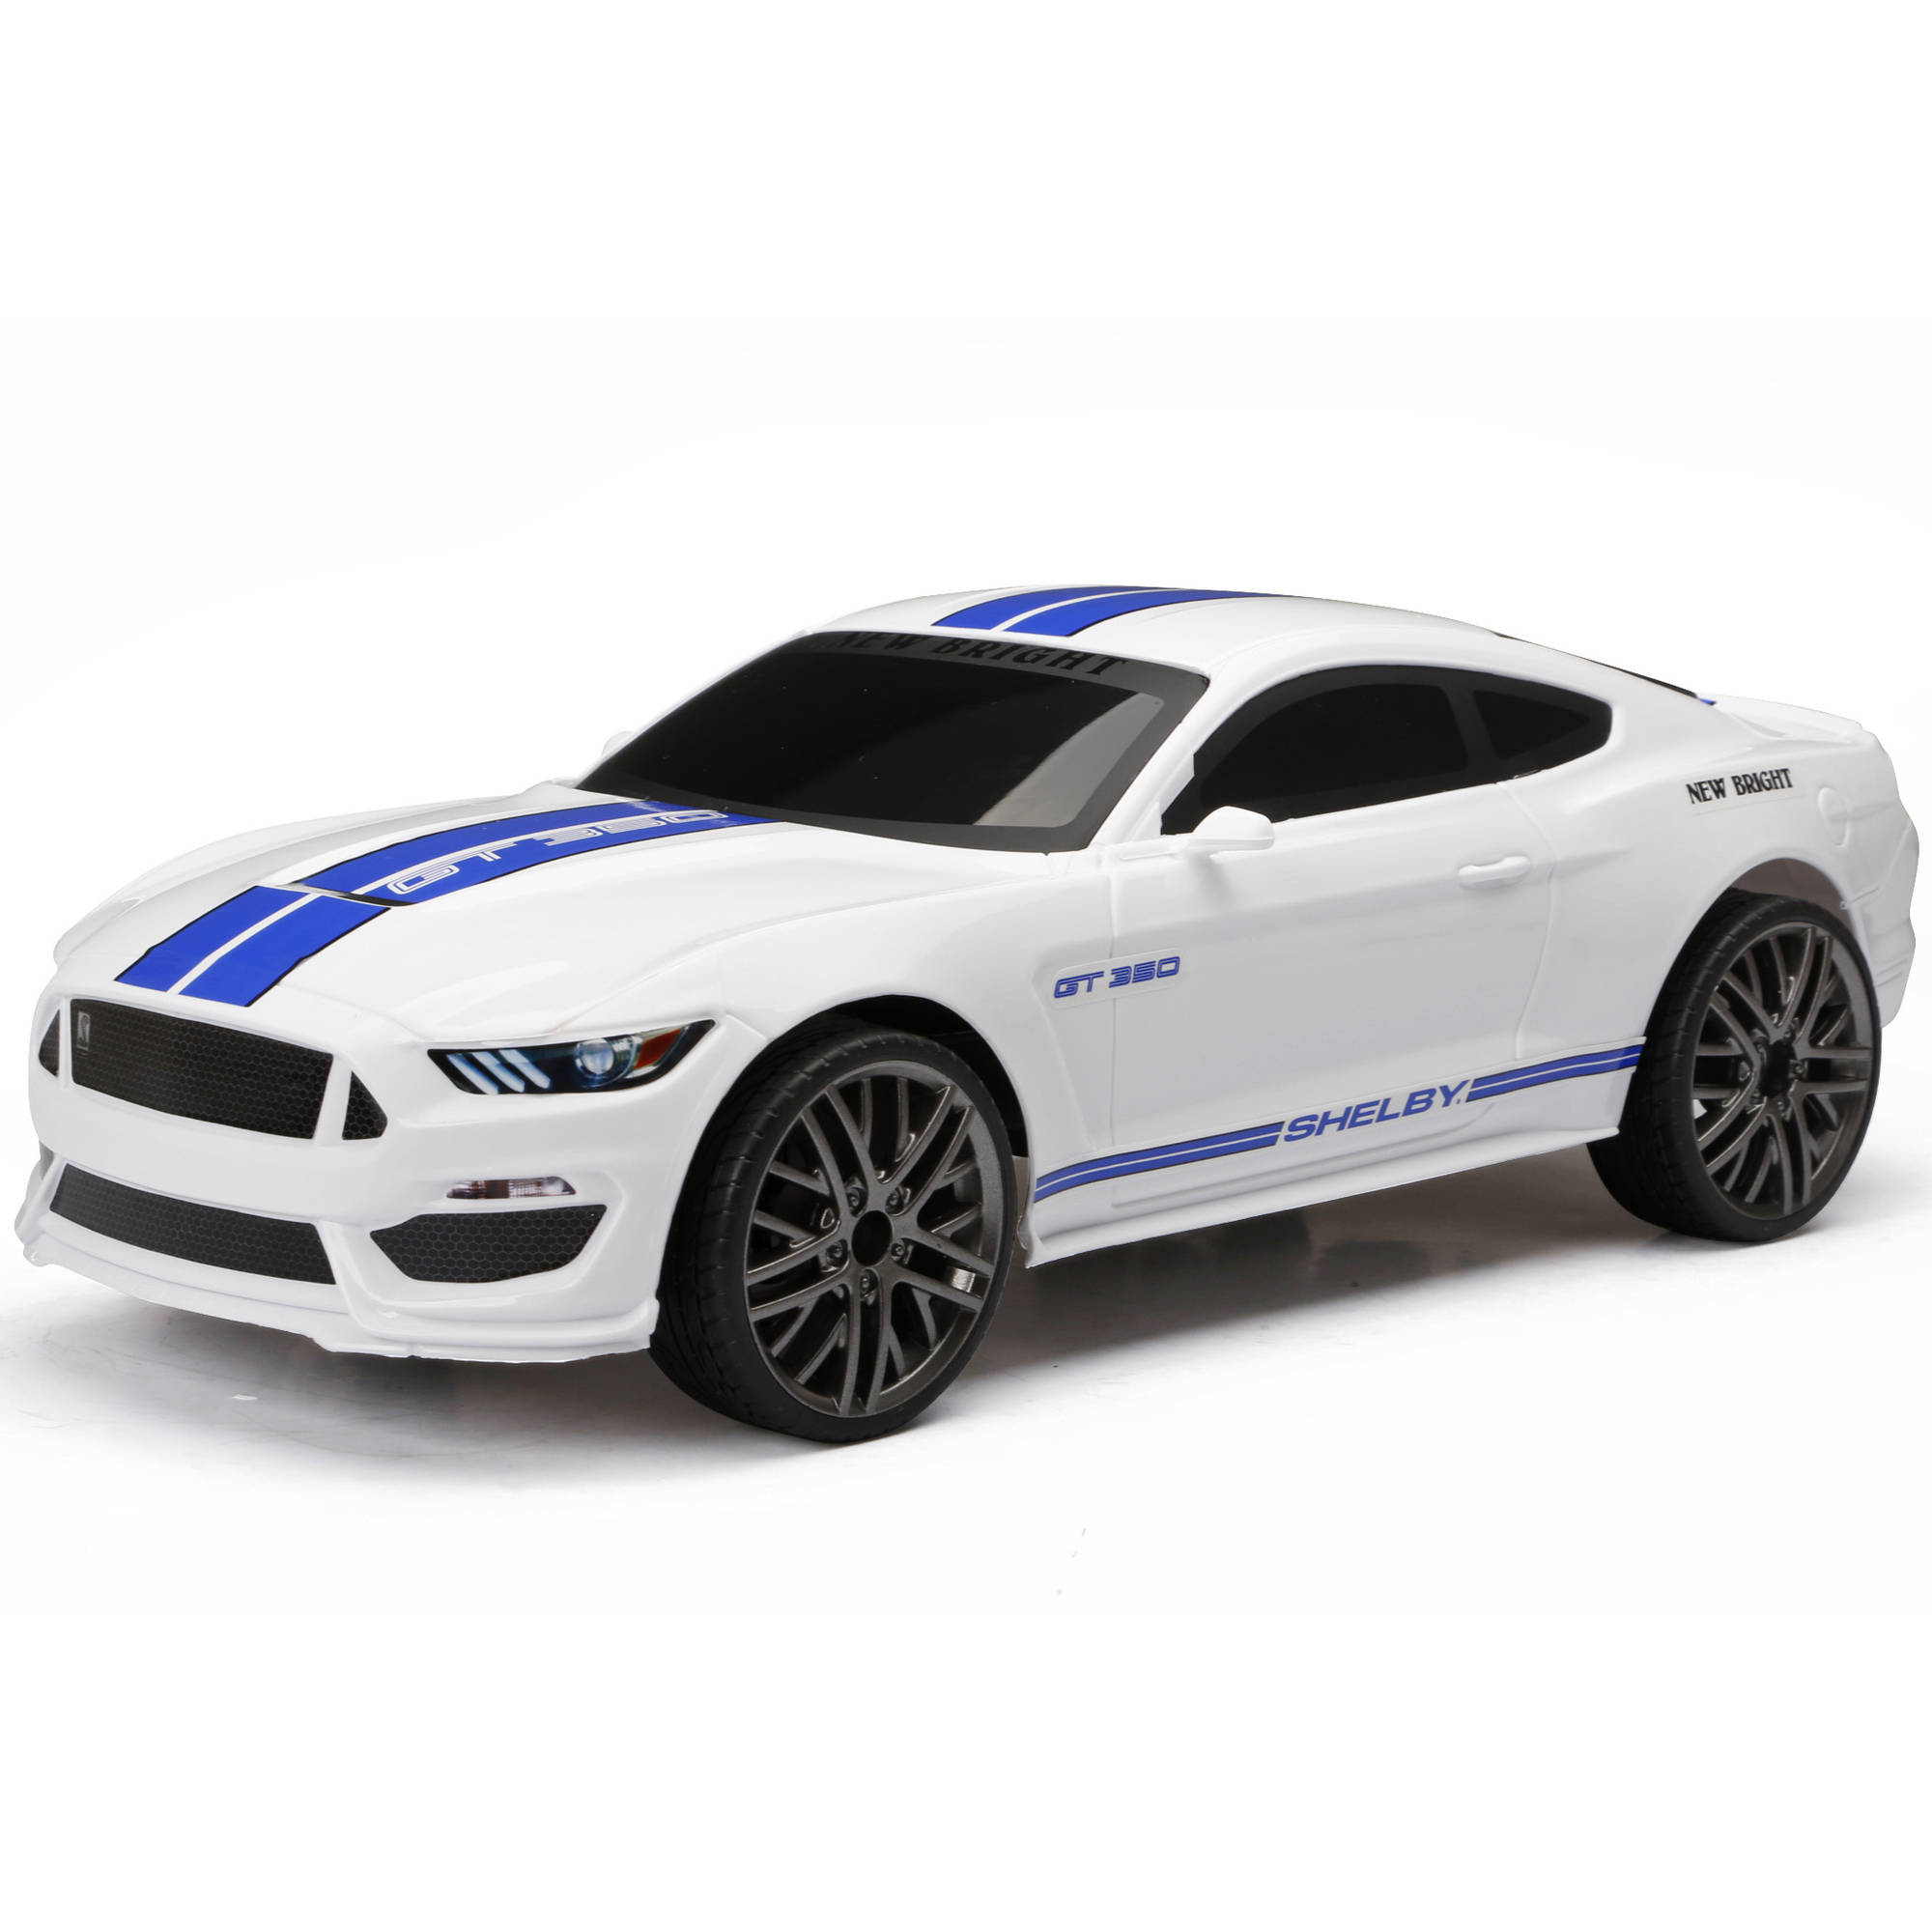 New Bright 1:12 Full-Function Mustang R/C Car - Walmart.com